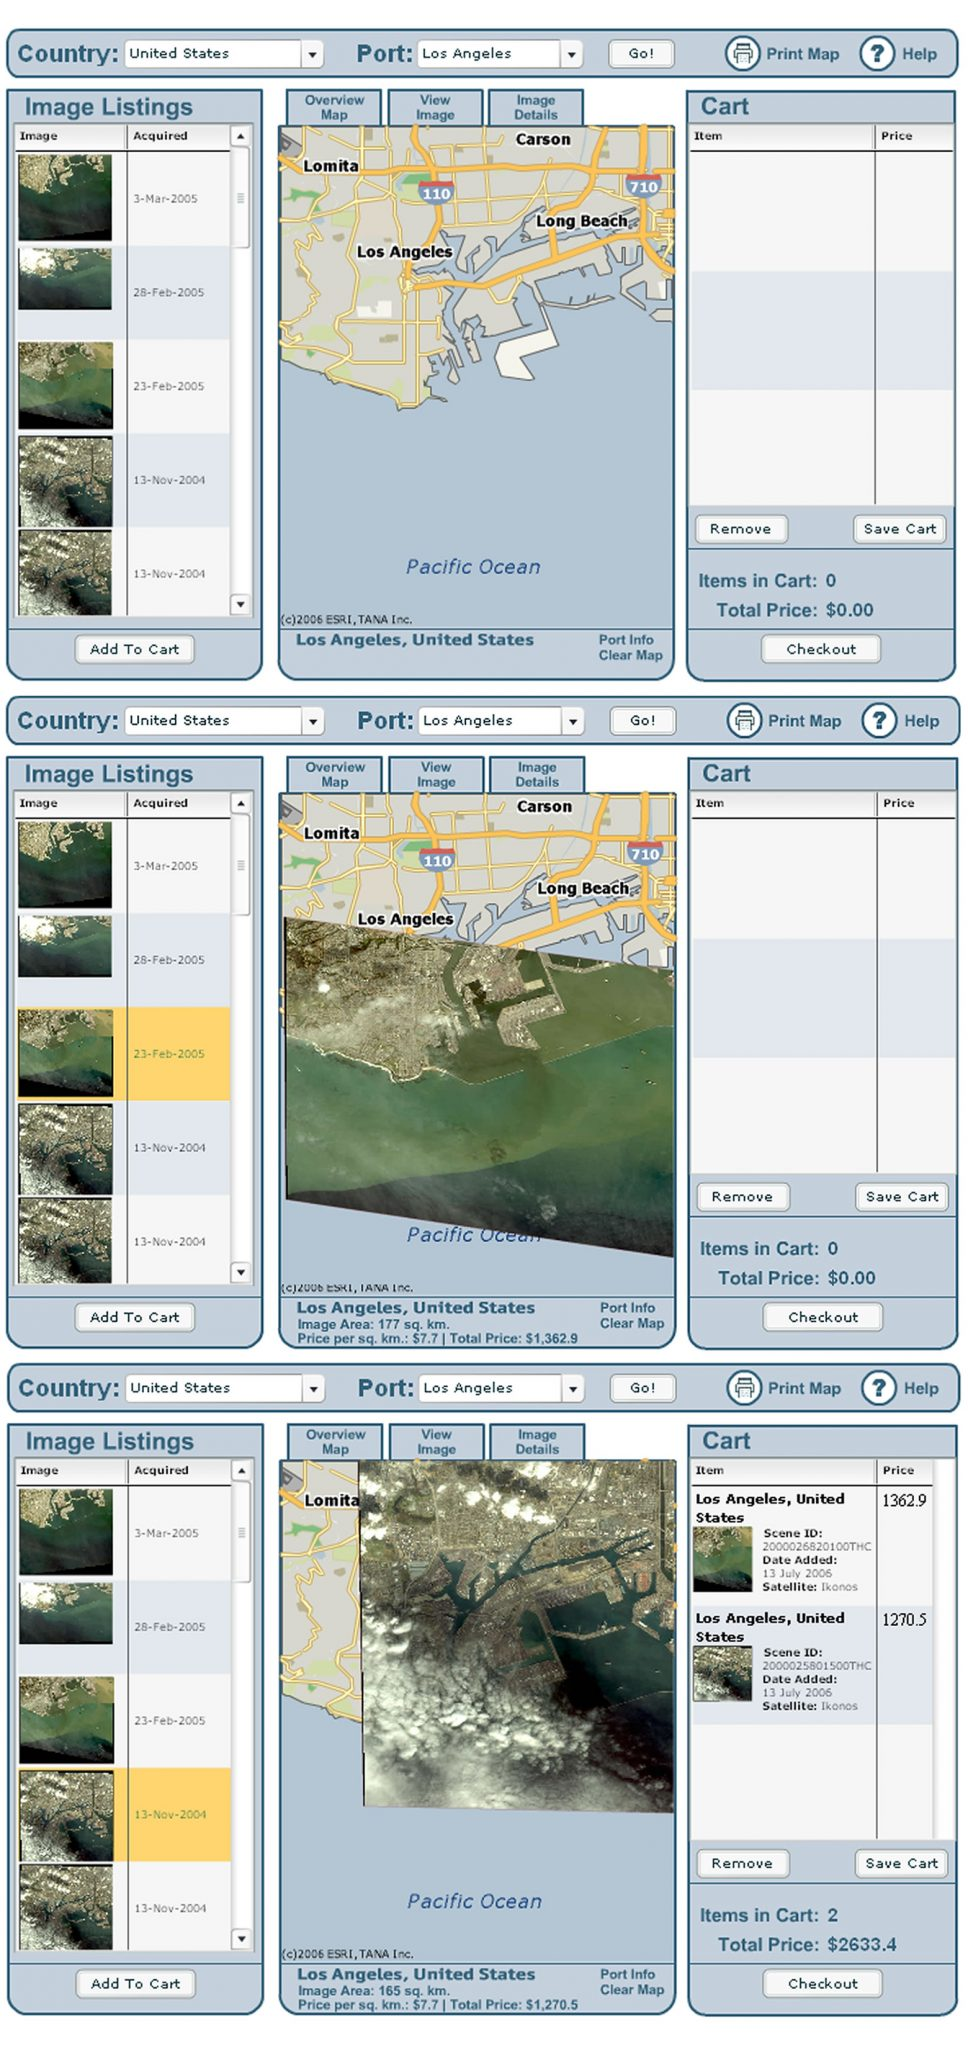 Flash-based application that searched for imagery related to a sea port and displayed imagery based on criteria.